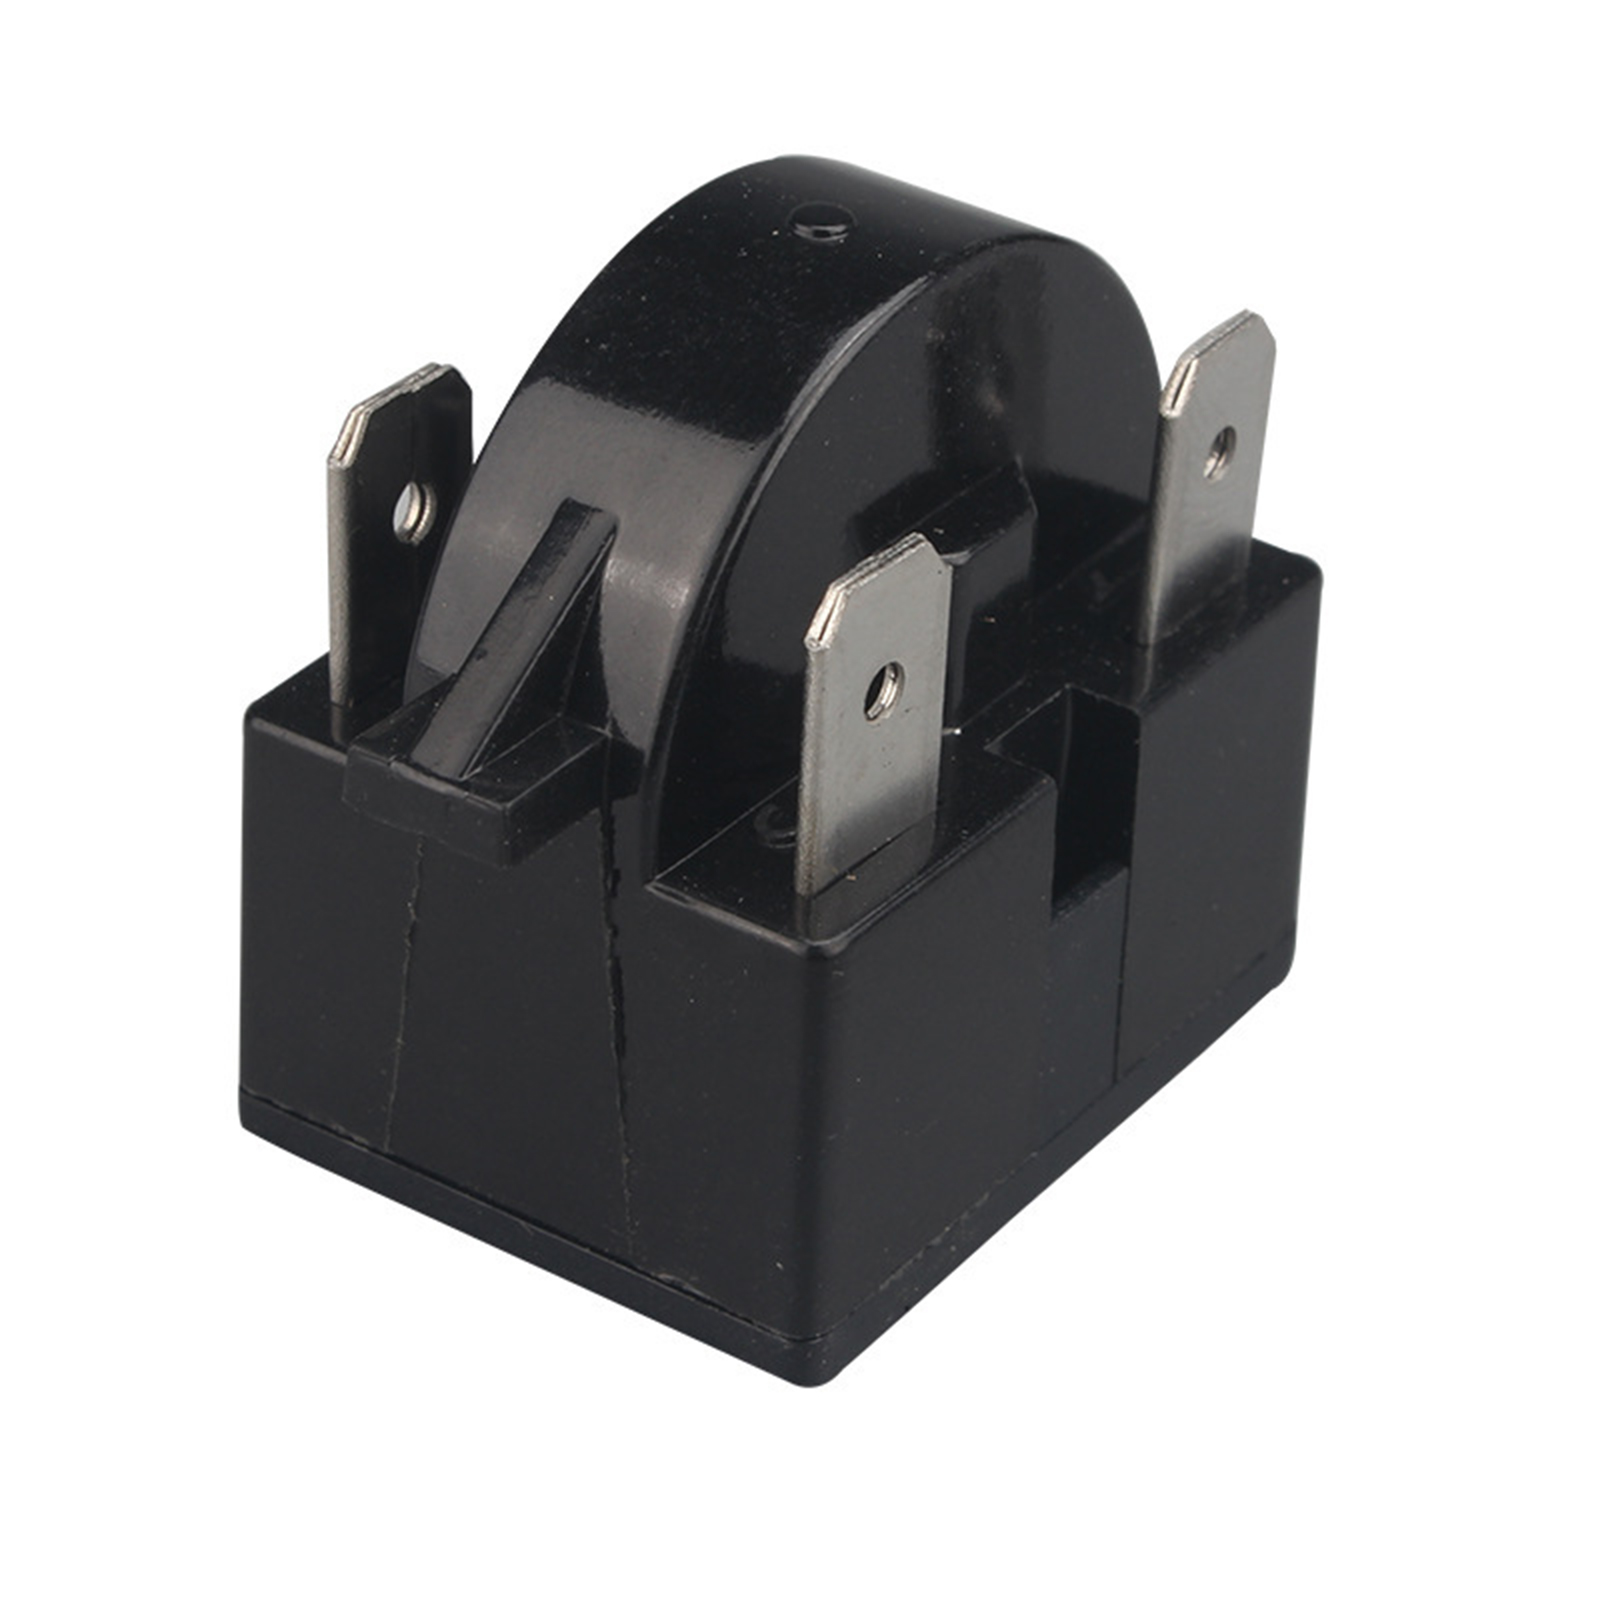 Compressor Relay Starter For QP2-15C Universal Type Three Inserts 15 Ohm Refrigerator Compressor Relay Starter